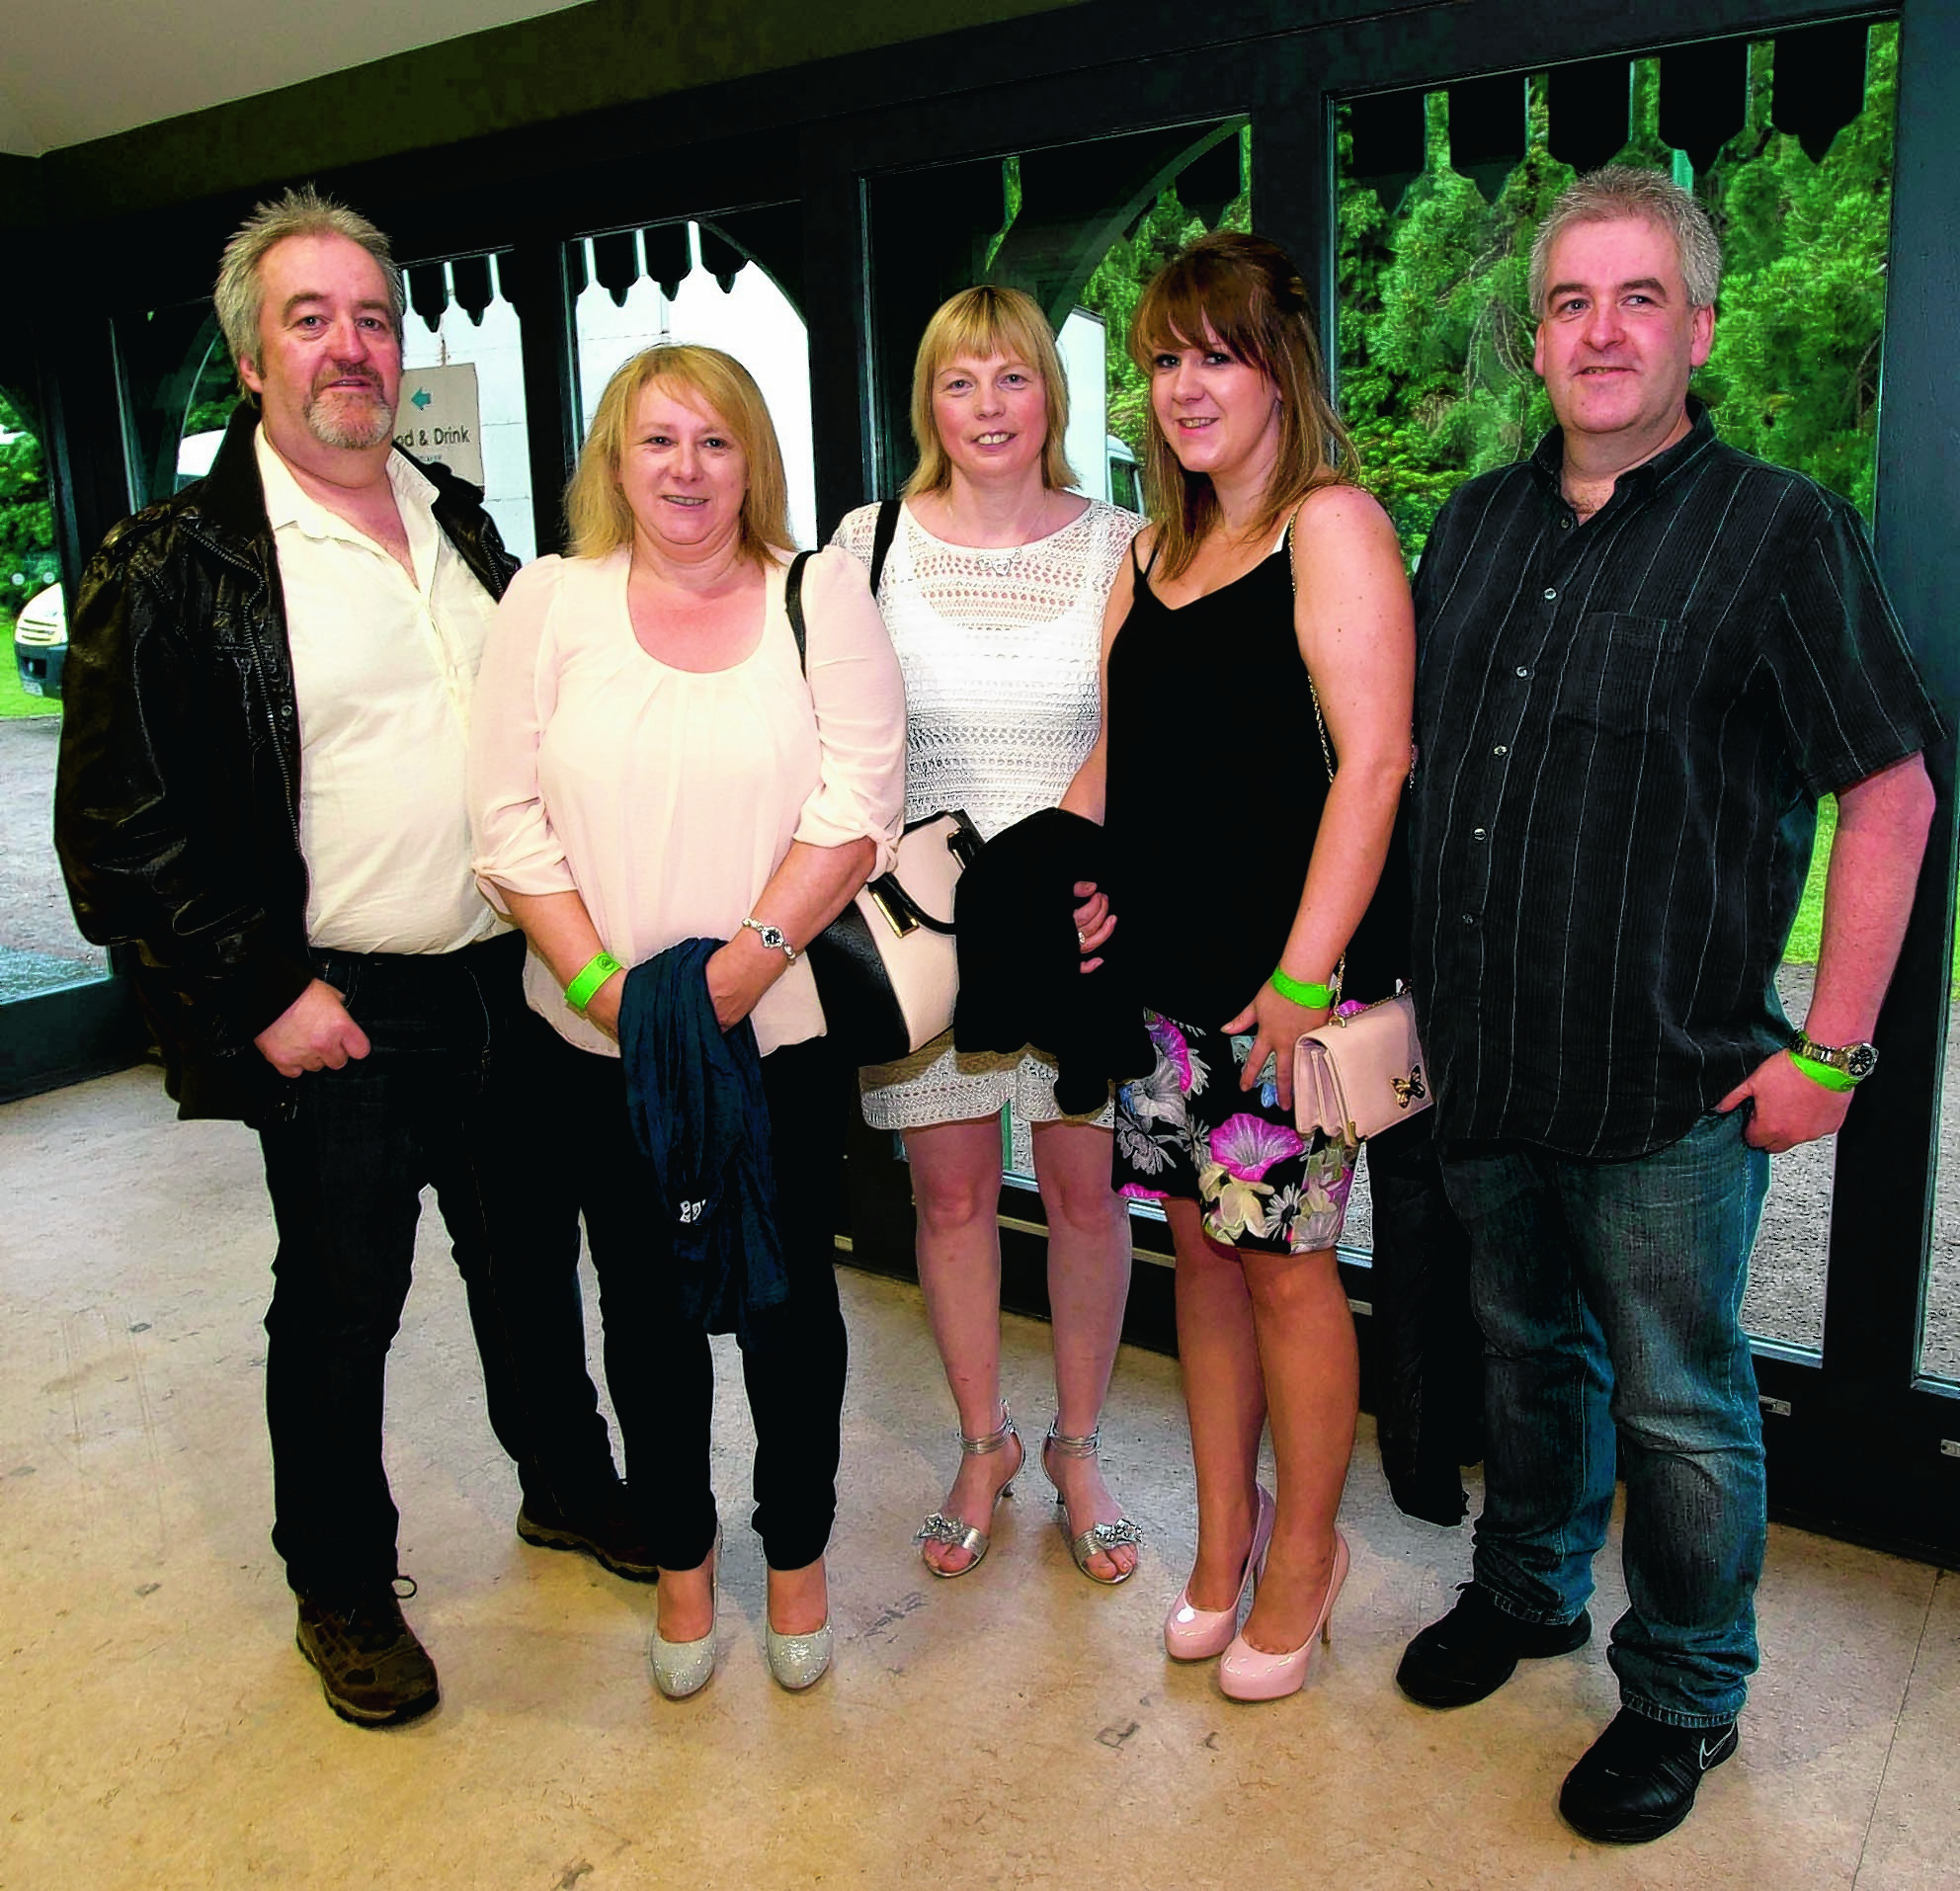 Norman, Christine, Mags, Louise and Gordon Matheson.